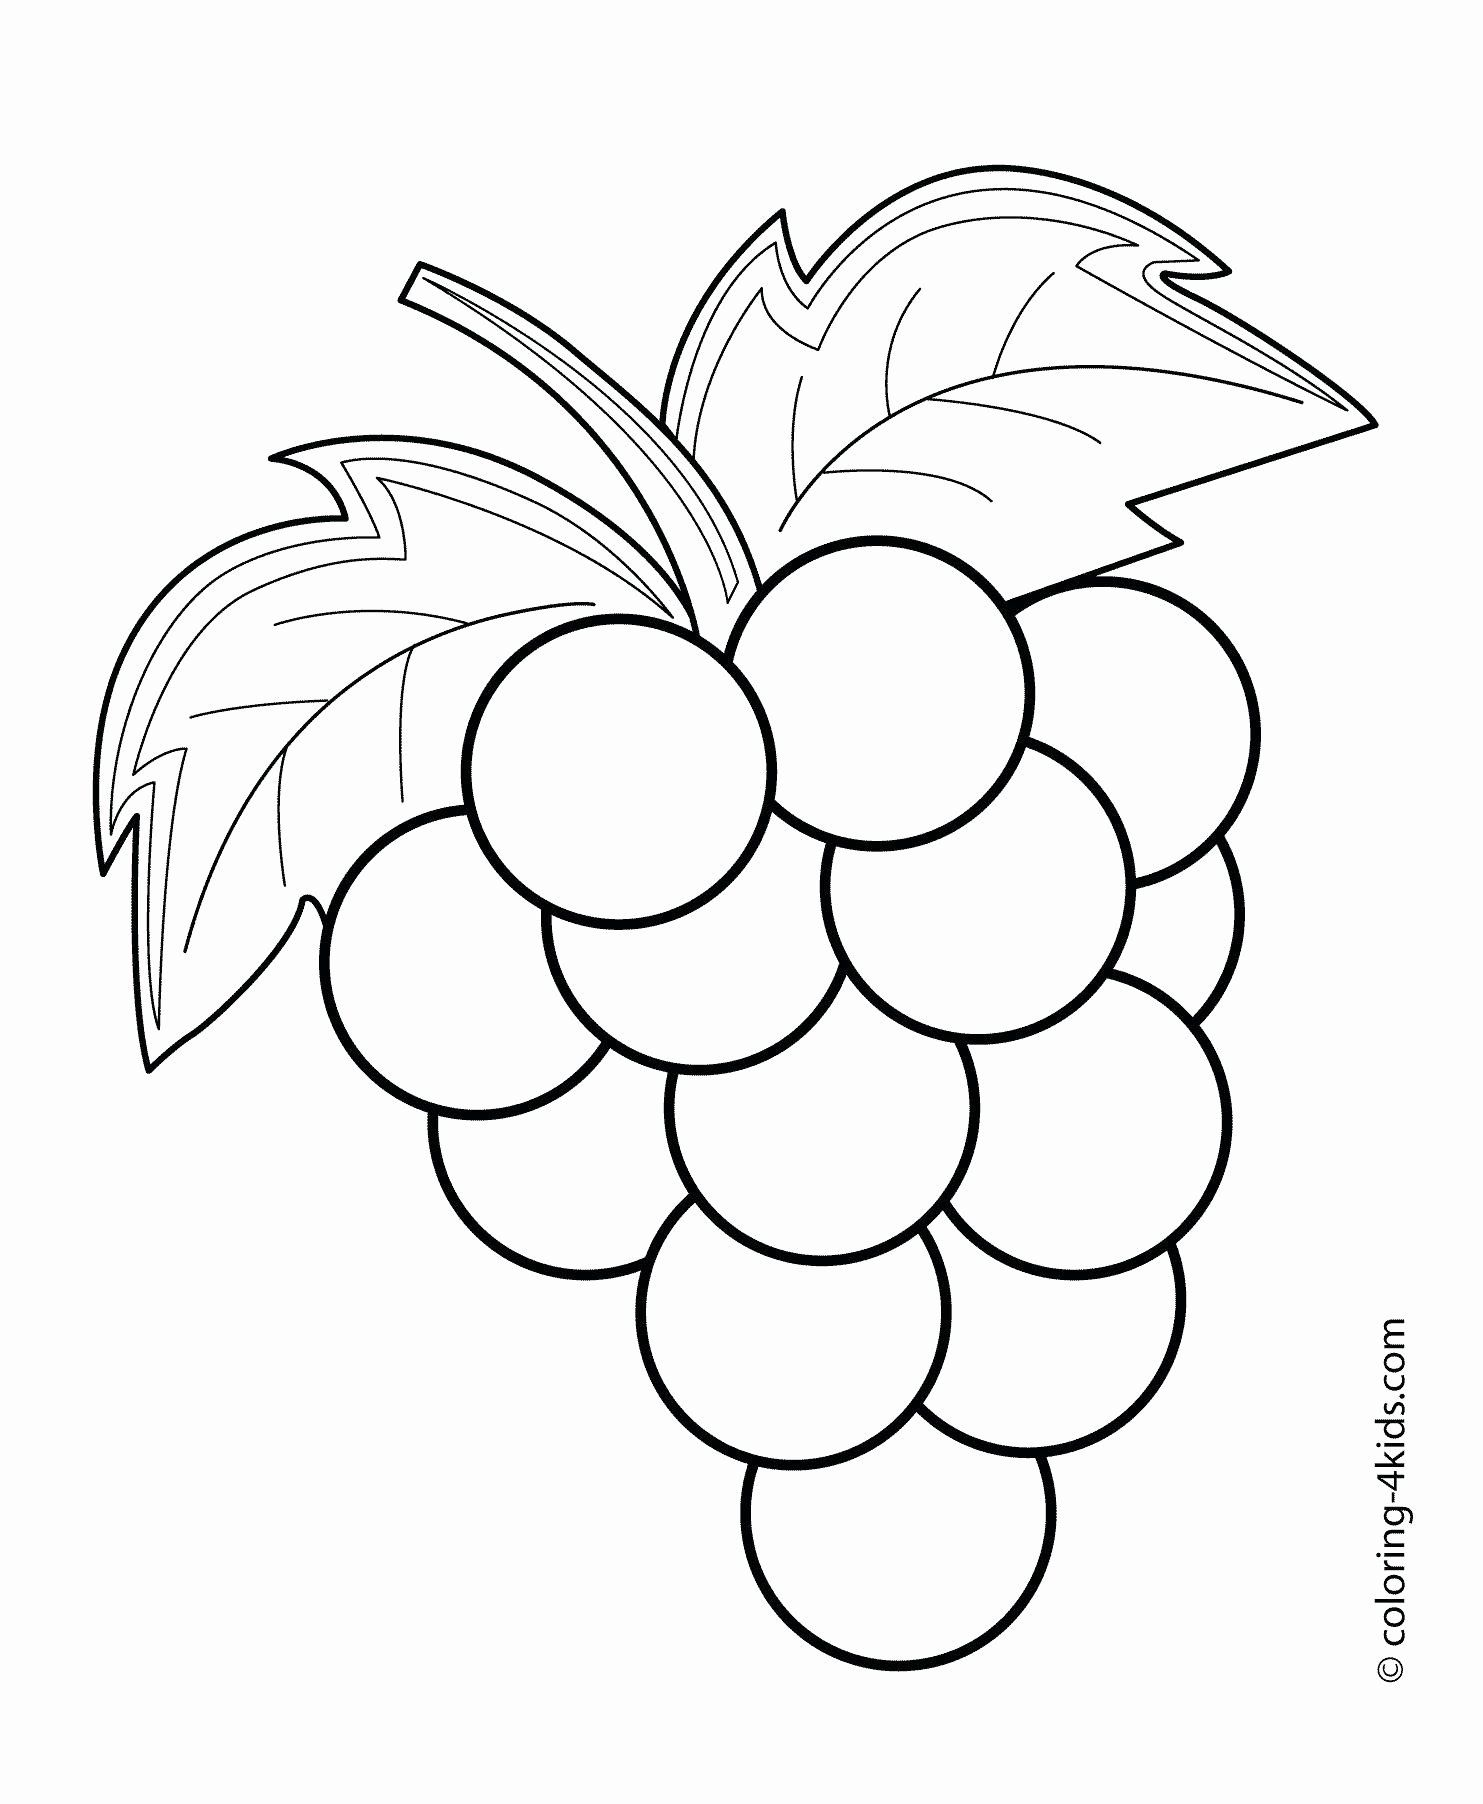 Apple Coloring Pages For Kindergarten Beautiful Pineapple Coloring